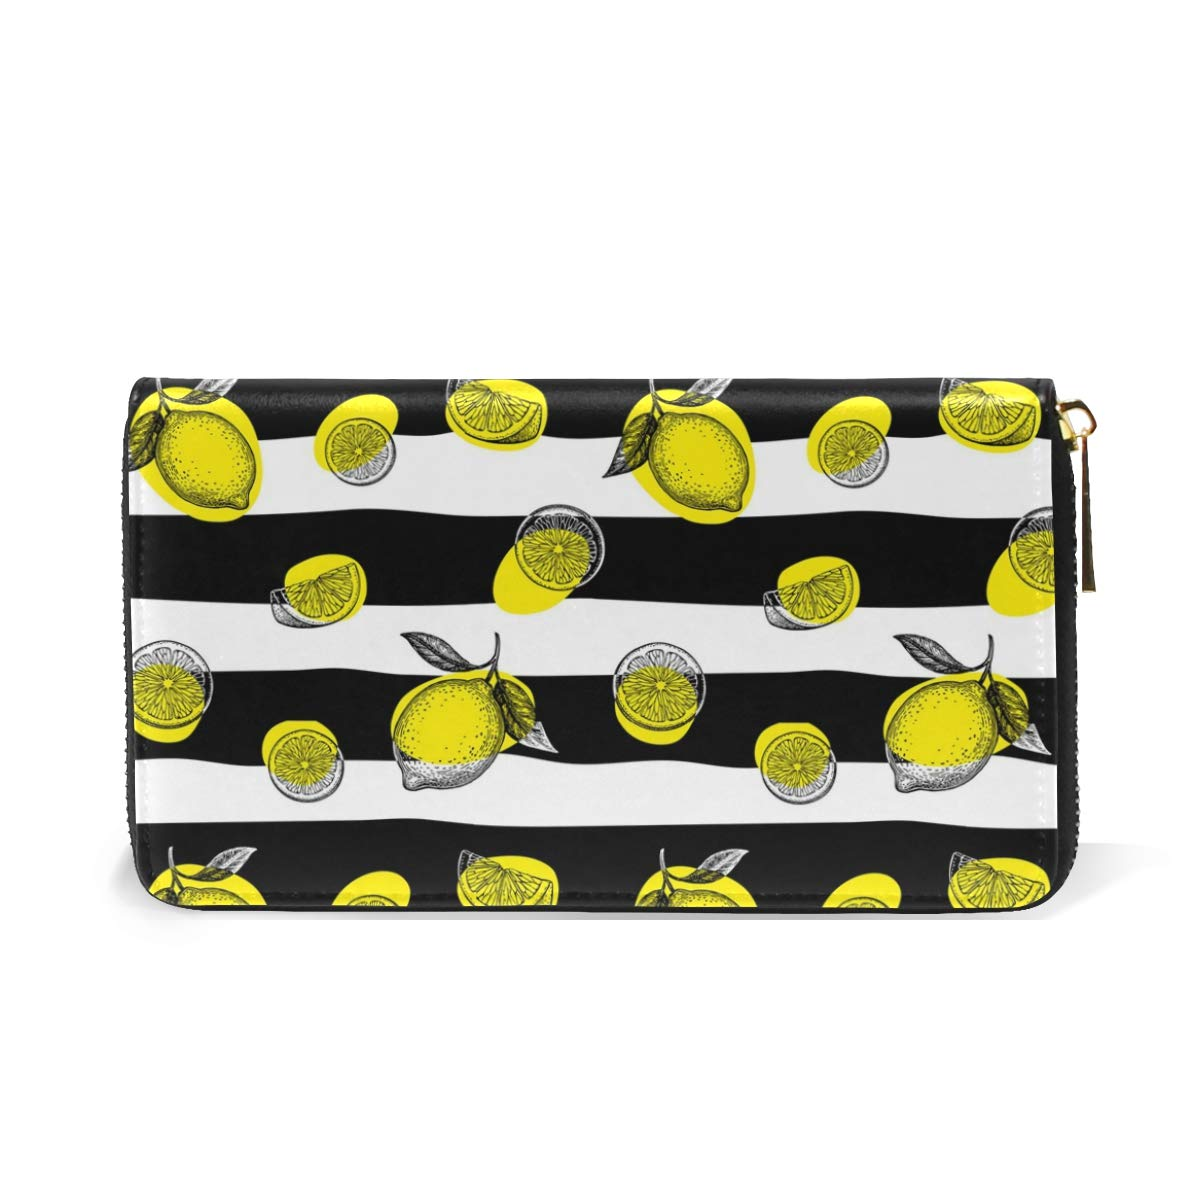 Scary Striped Zombie Lemon Super Leather Zipper Wallet For Woman Simple Wallet Durable And Beautiful at Amazon Womens Clothing store: